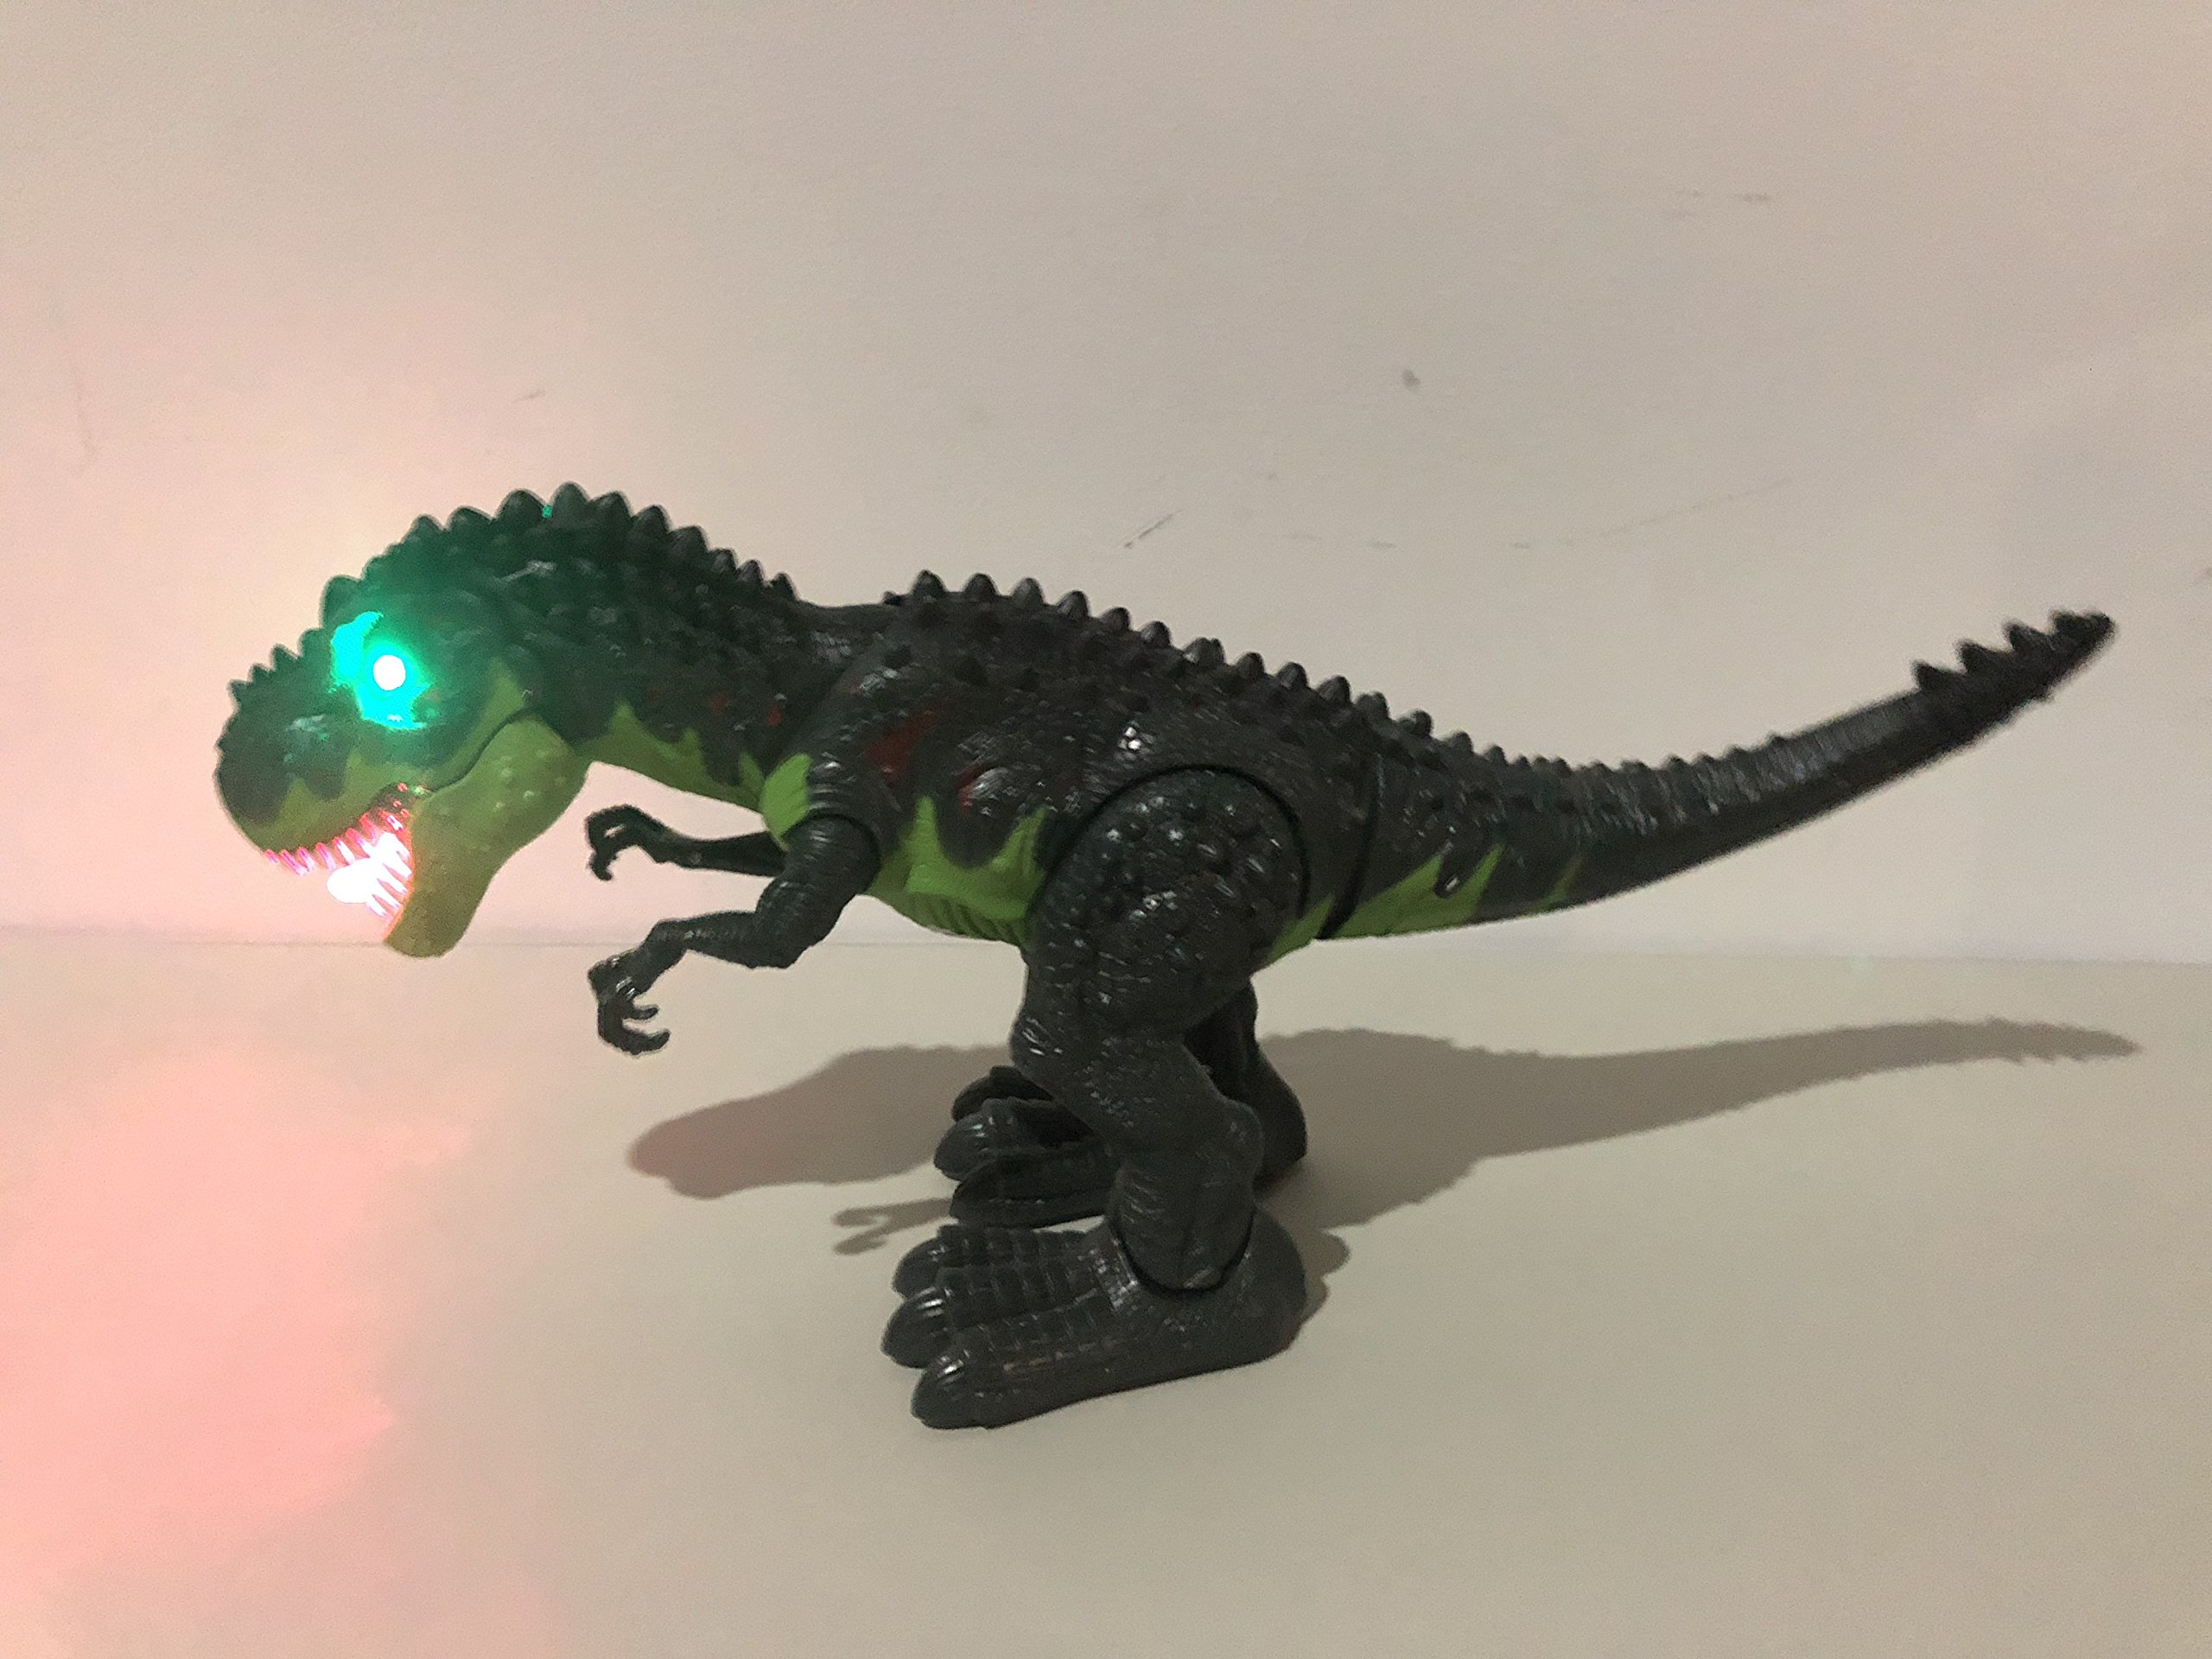 SY WonderPlay Tyrannosaurus T-Rex Dinosaur with Lights and Realistic Sounds Action Figure Toy - Light Up Eyes, Awesome Sounds - Walks on Its Own! - Great Gift Boys 3+,Battery Operate (Green) by SY (Image #7)